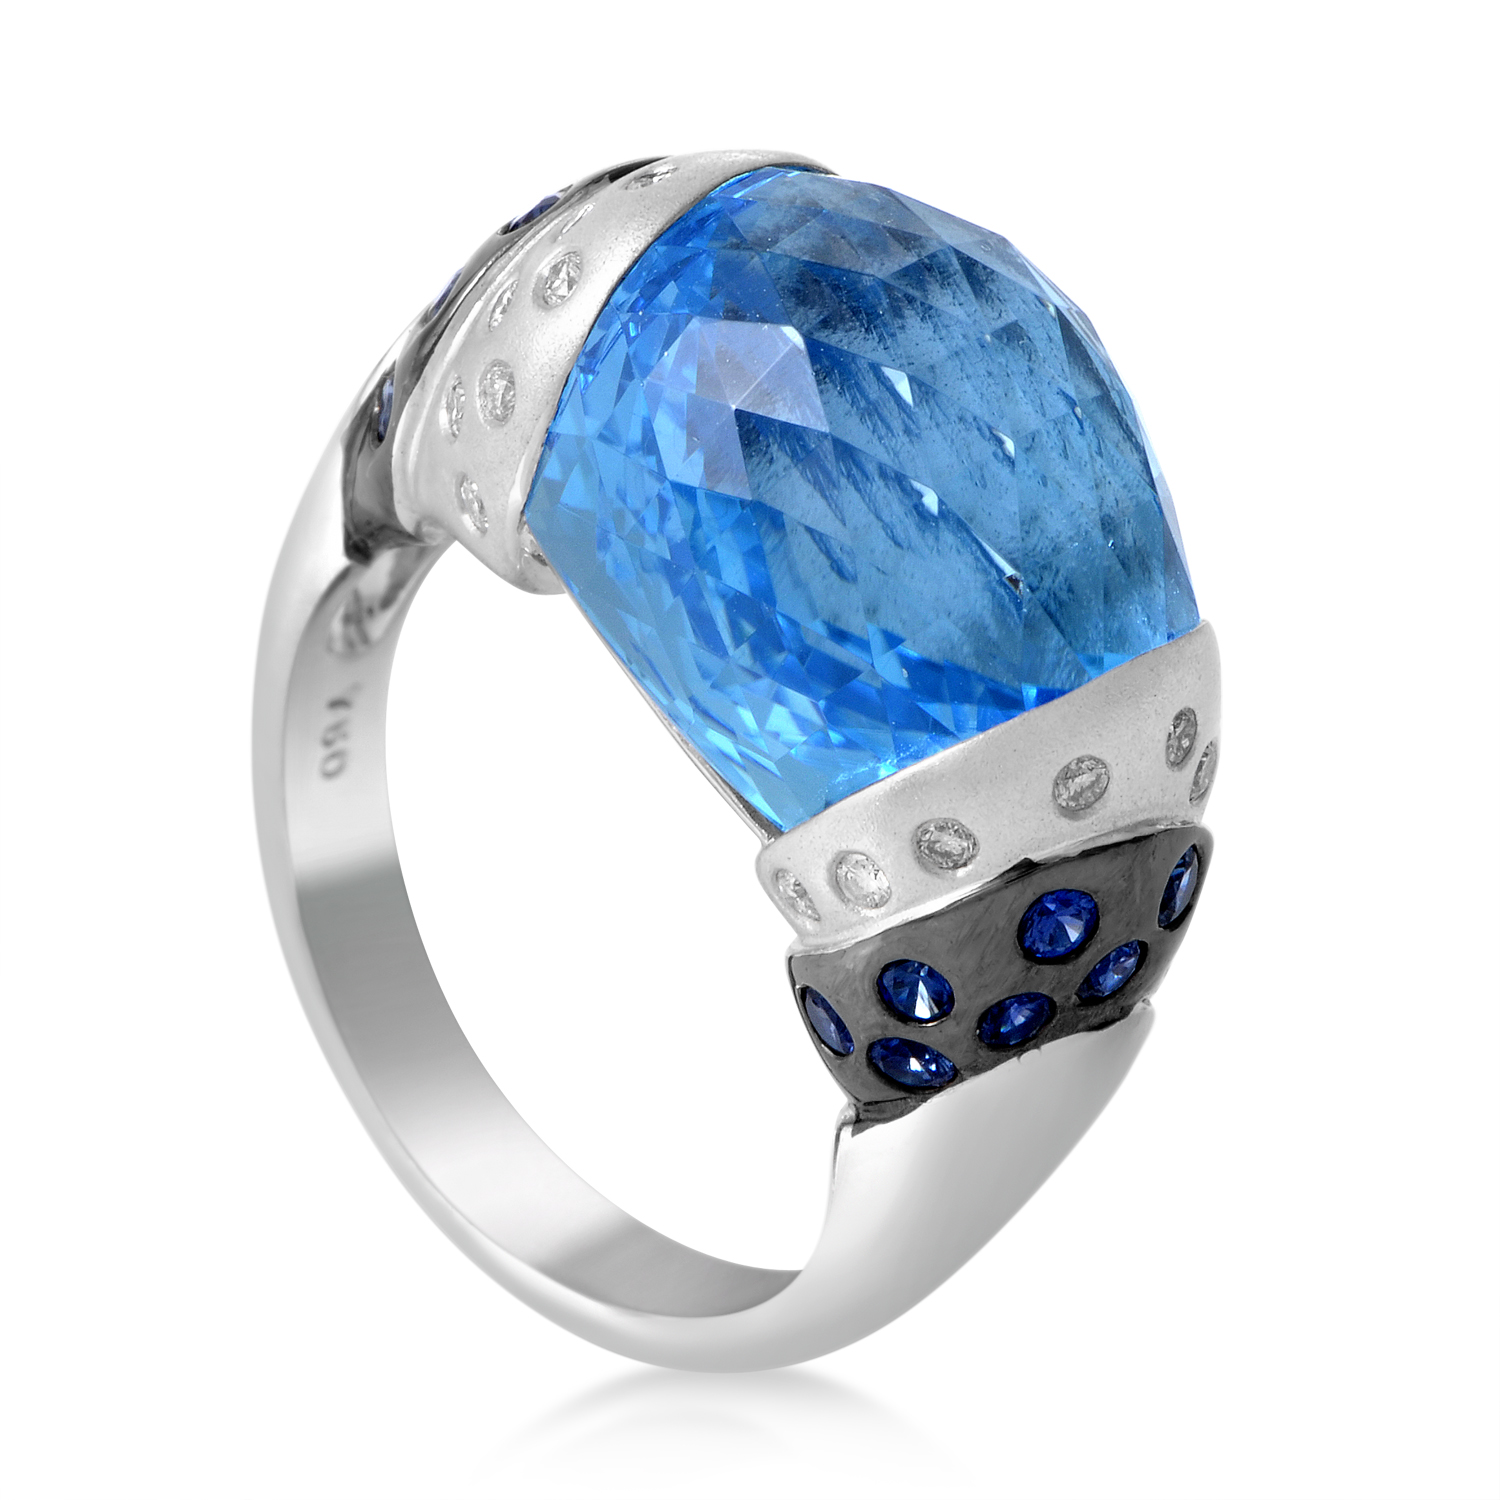 Women's 18K White Gold Diamond & Blue Gemstone Ring 11932